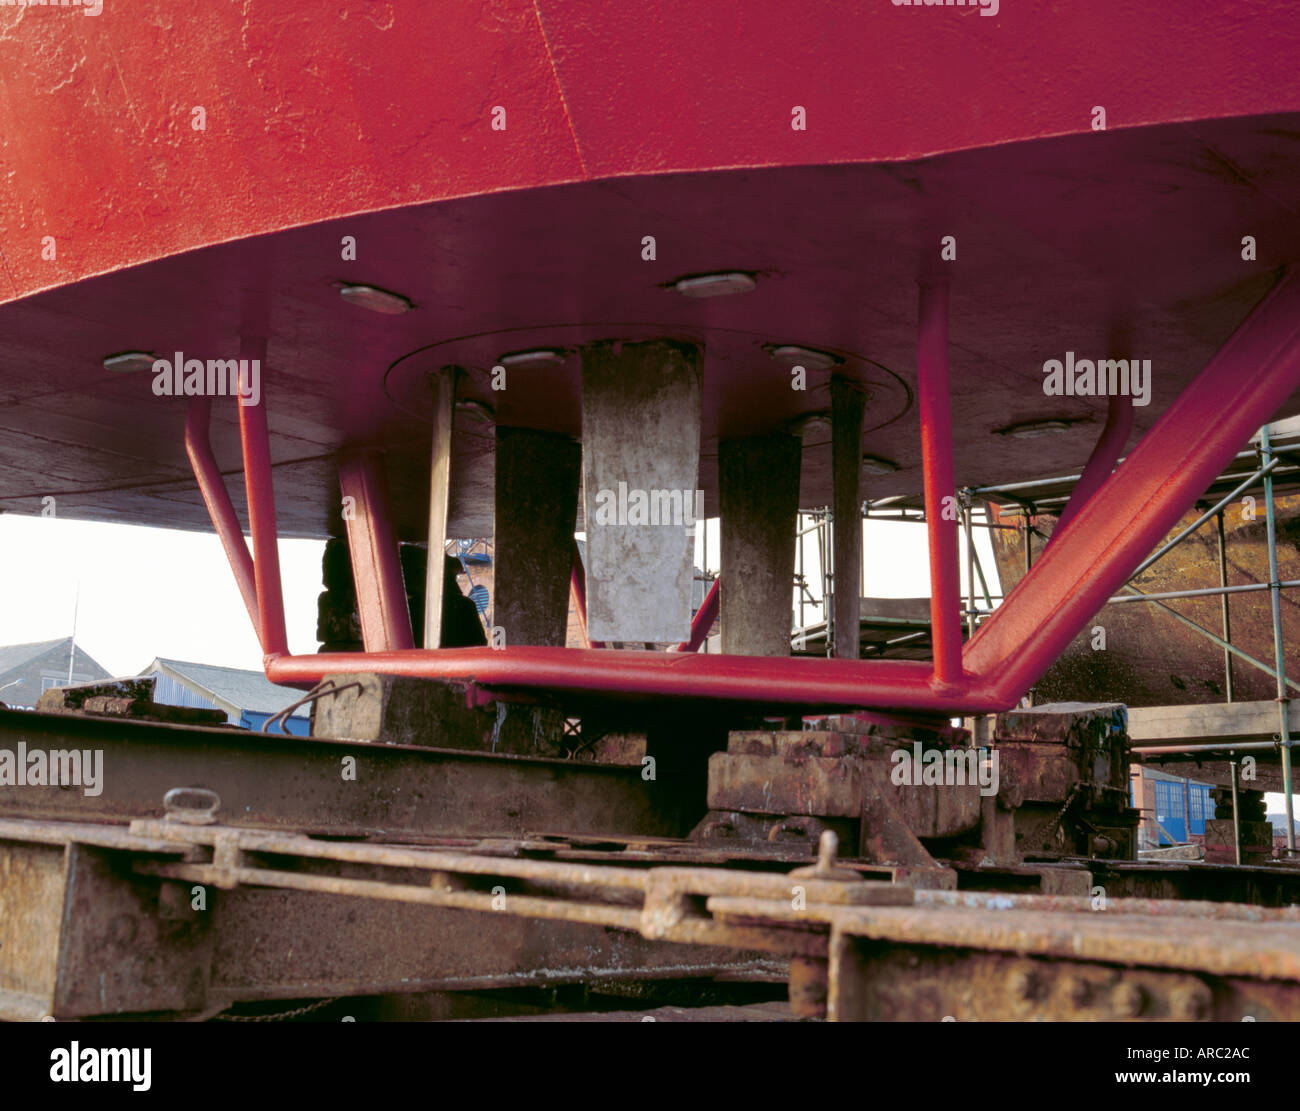 Voith Schneider Propulsion Unit On A Tug In A Ship Repair Yard Stock Photo Alamy